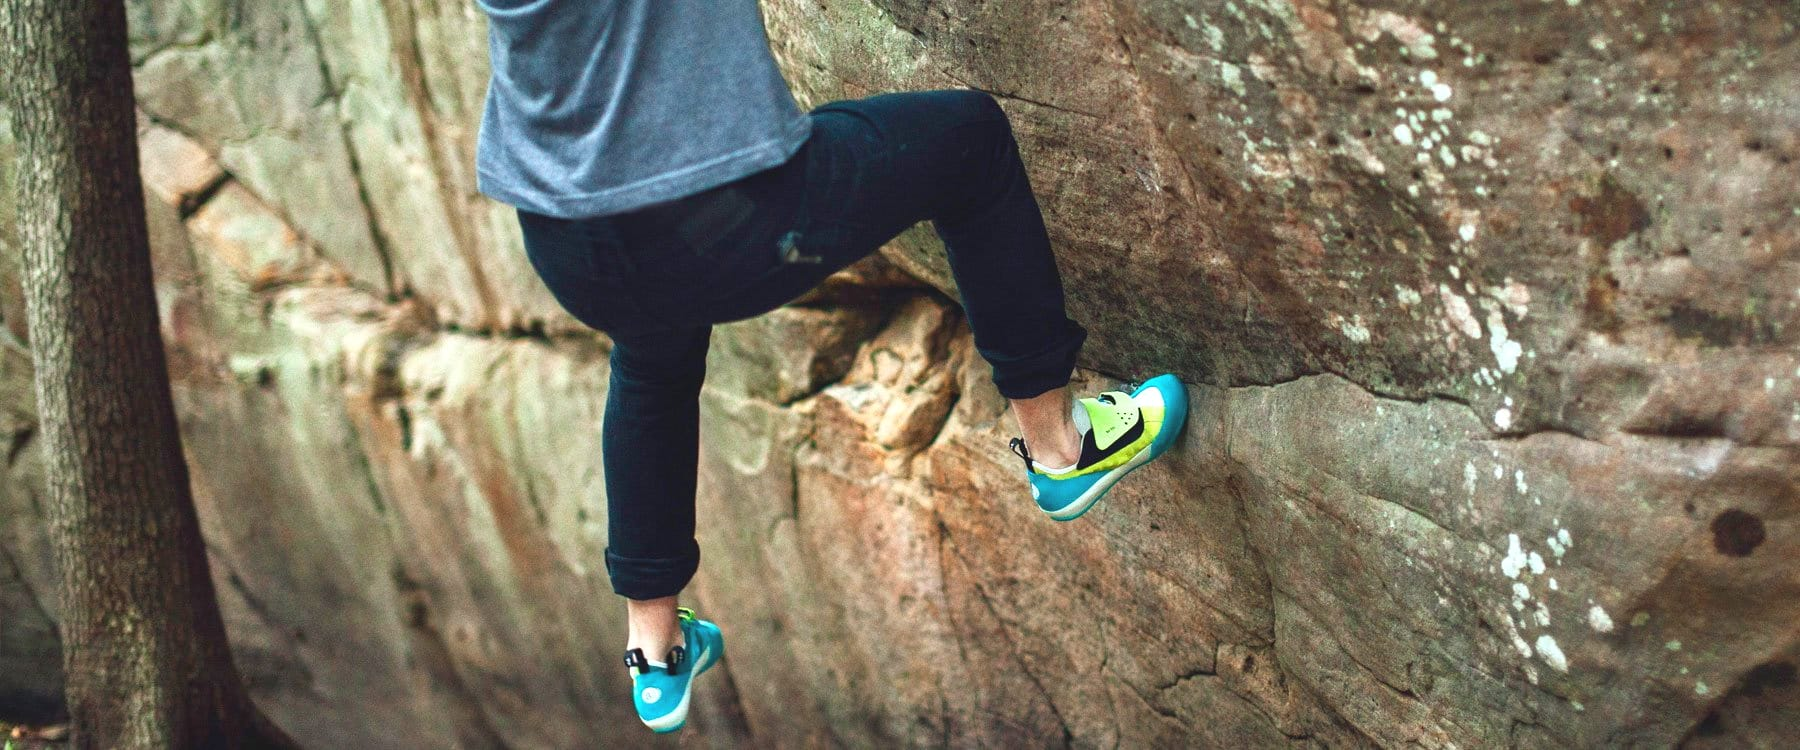 Best Climbing Shoes for Kids Reviewed in Detail